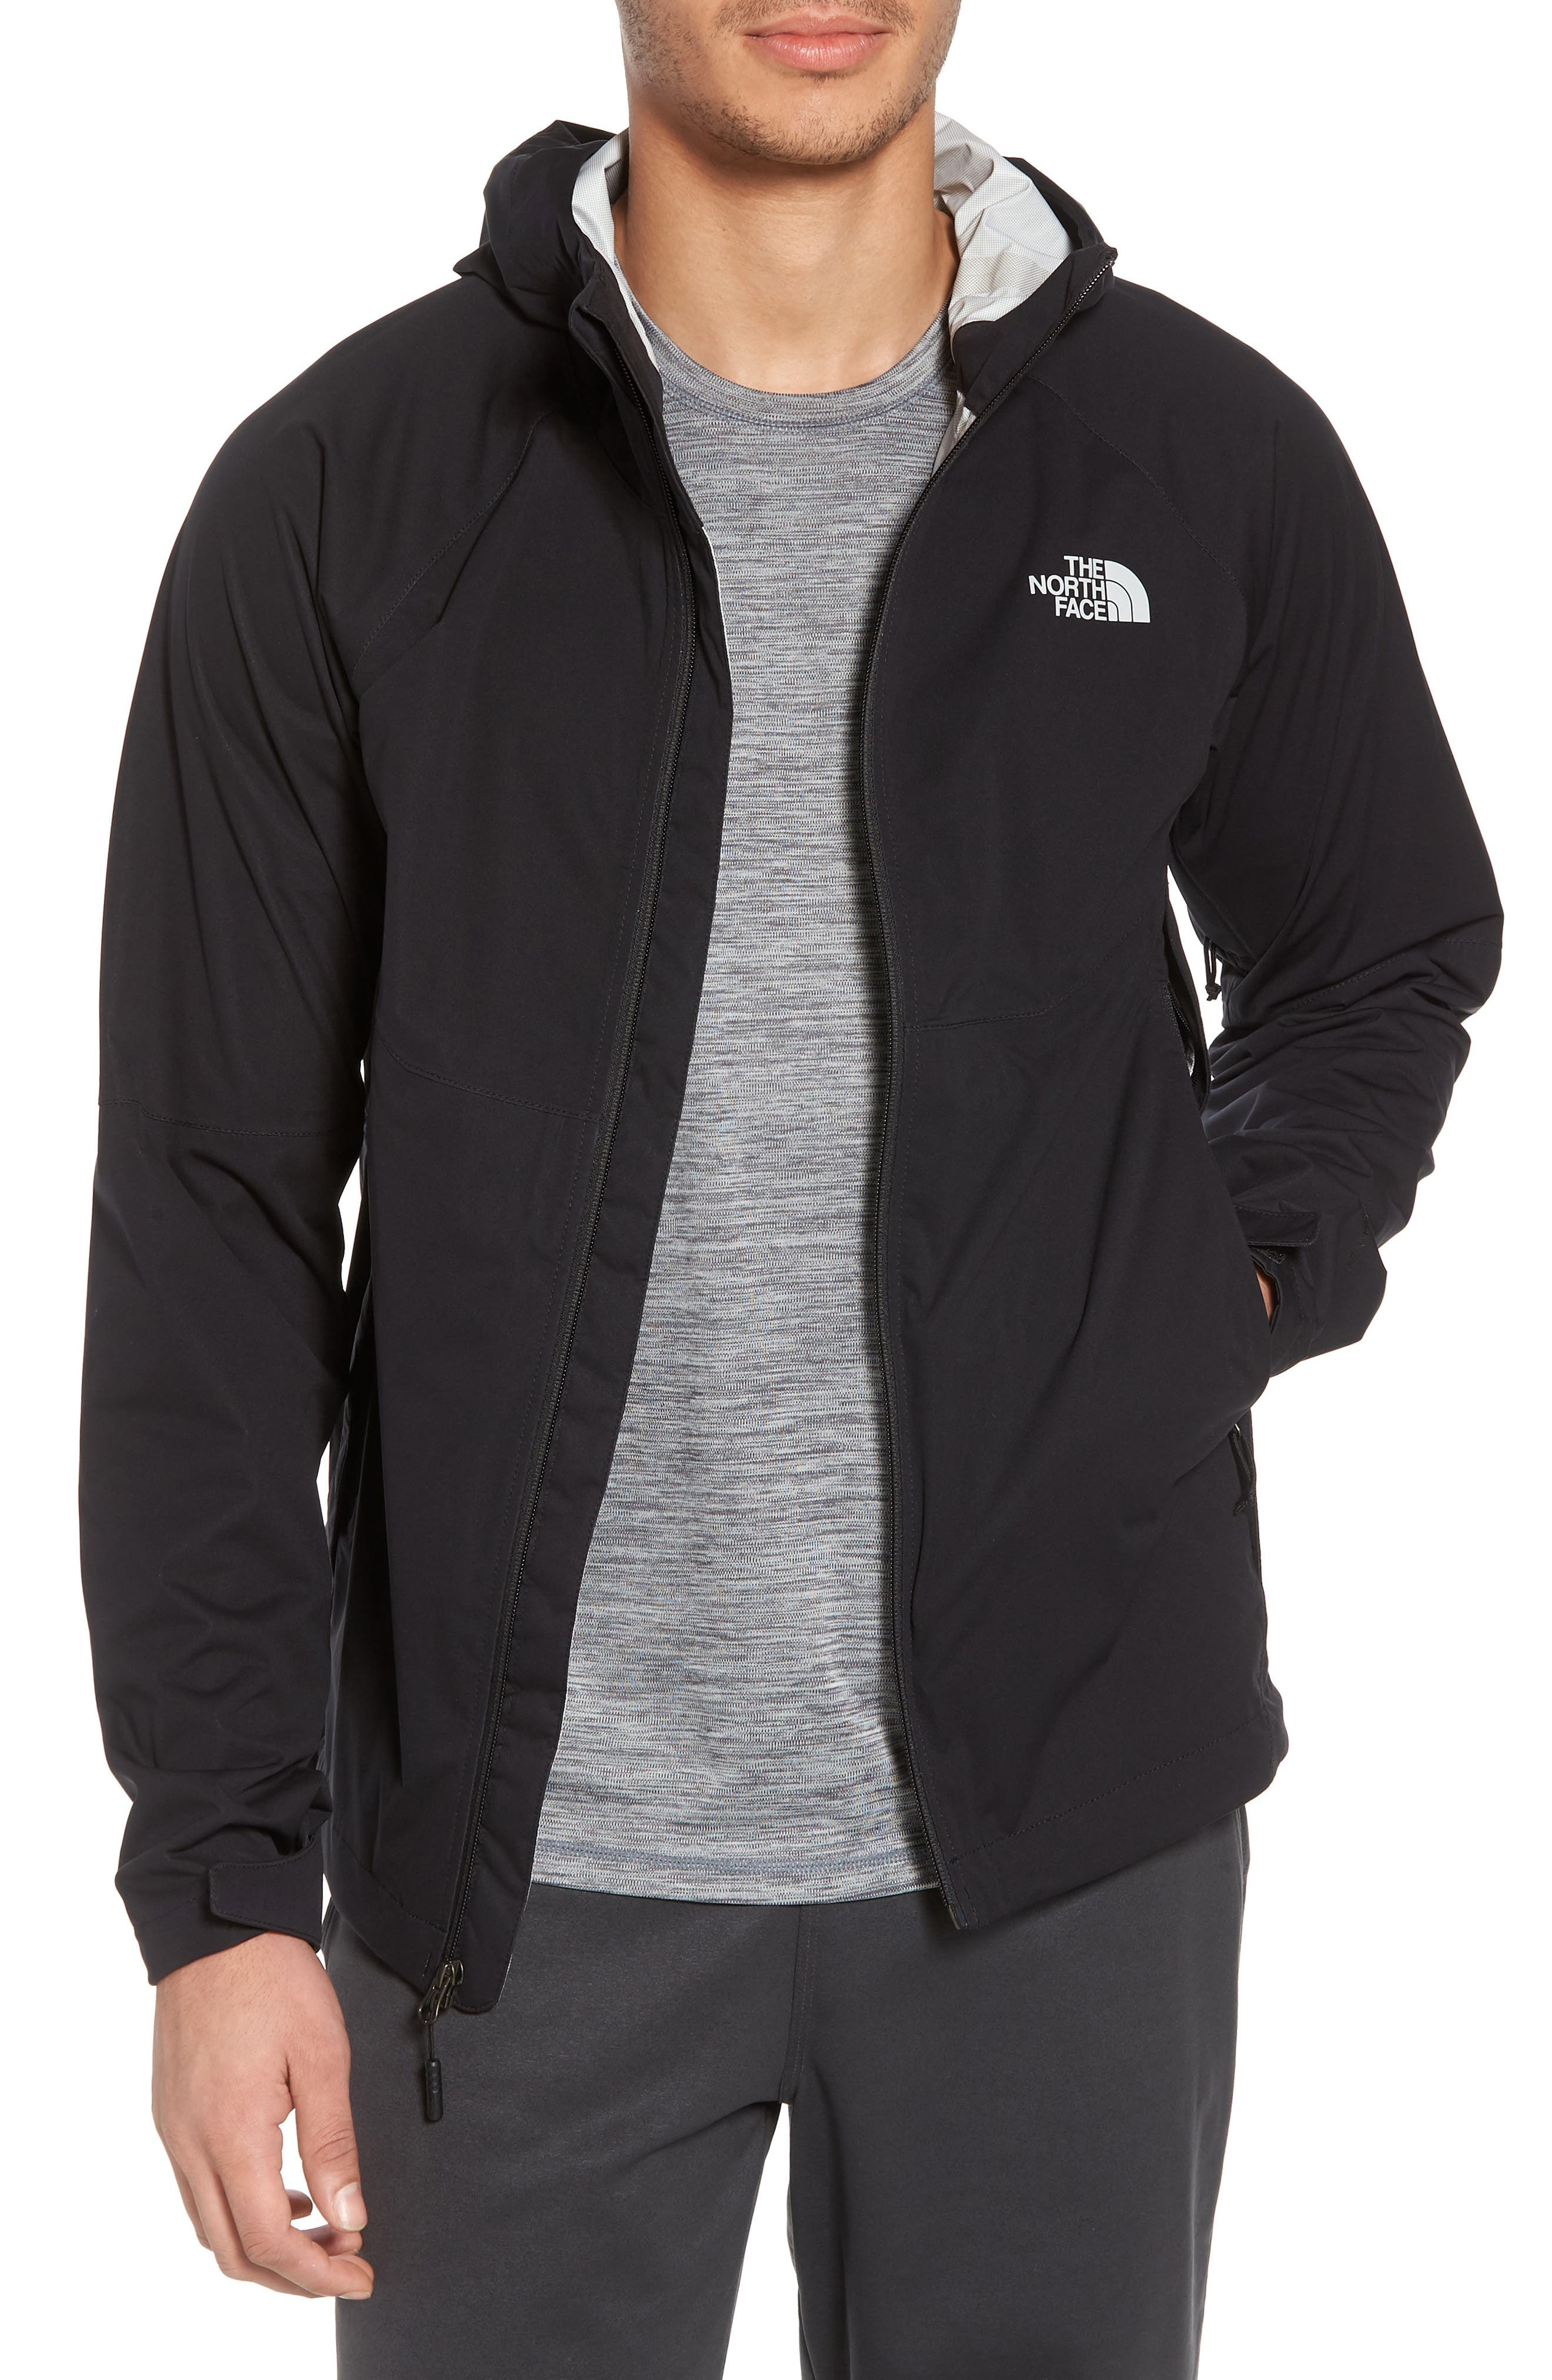 Allproof Stretch Hooded Rain Jacket,                         Main,                         color, Tnf Black